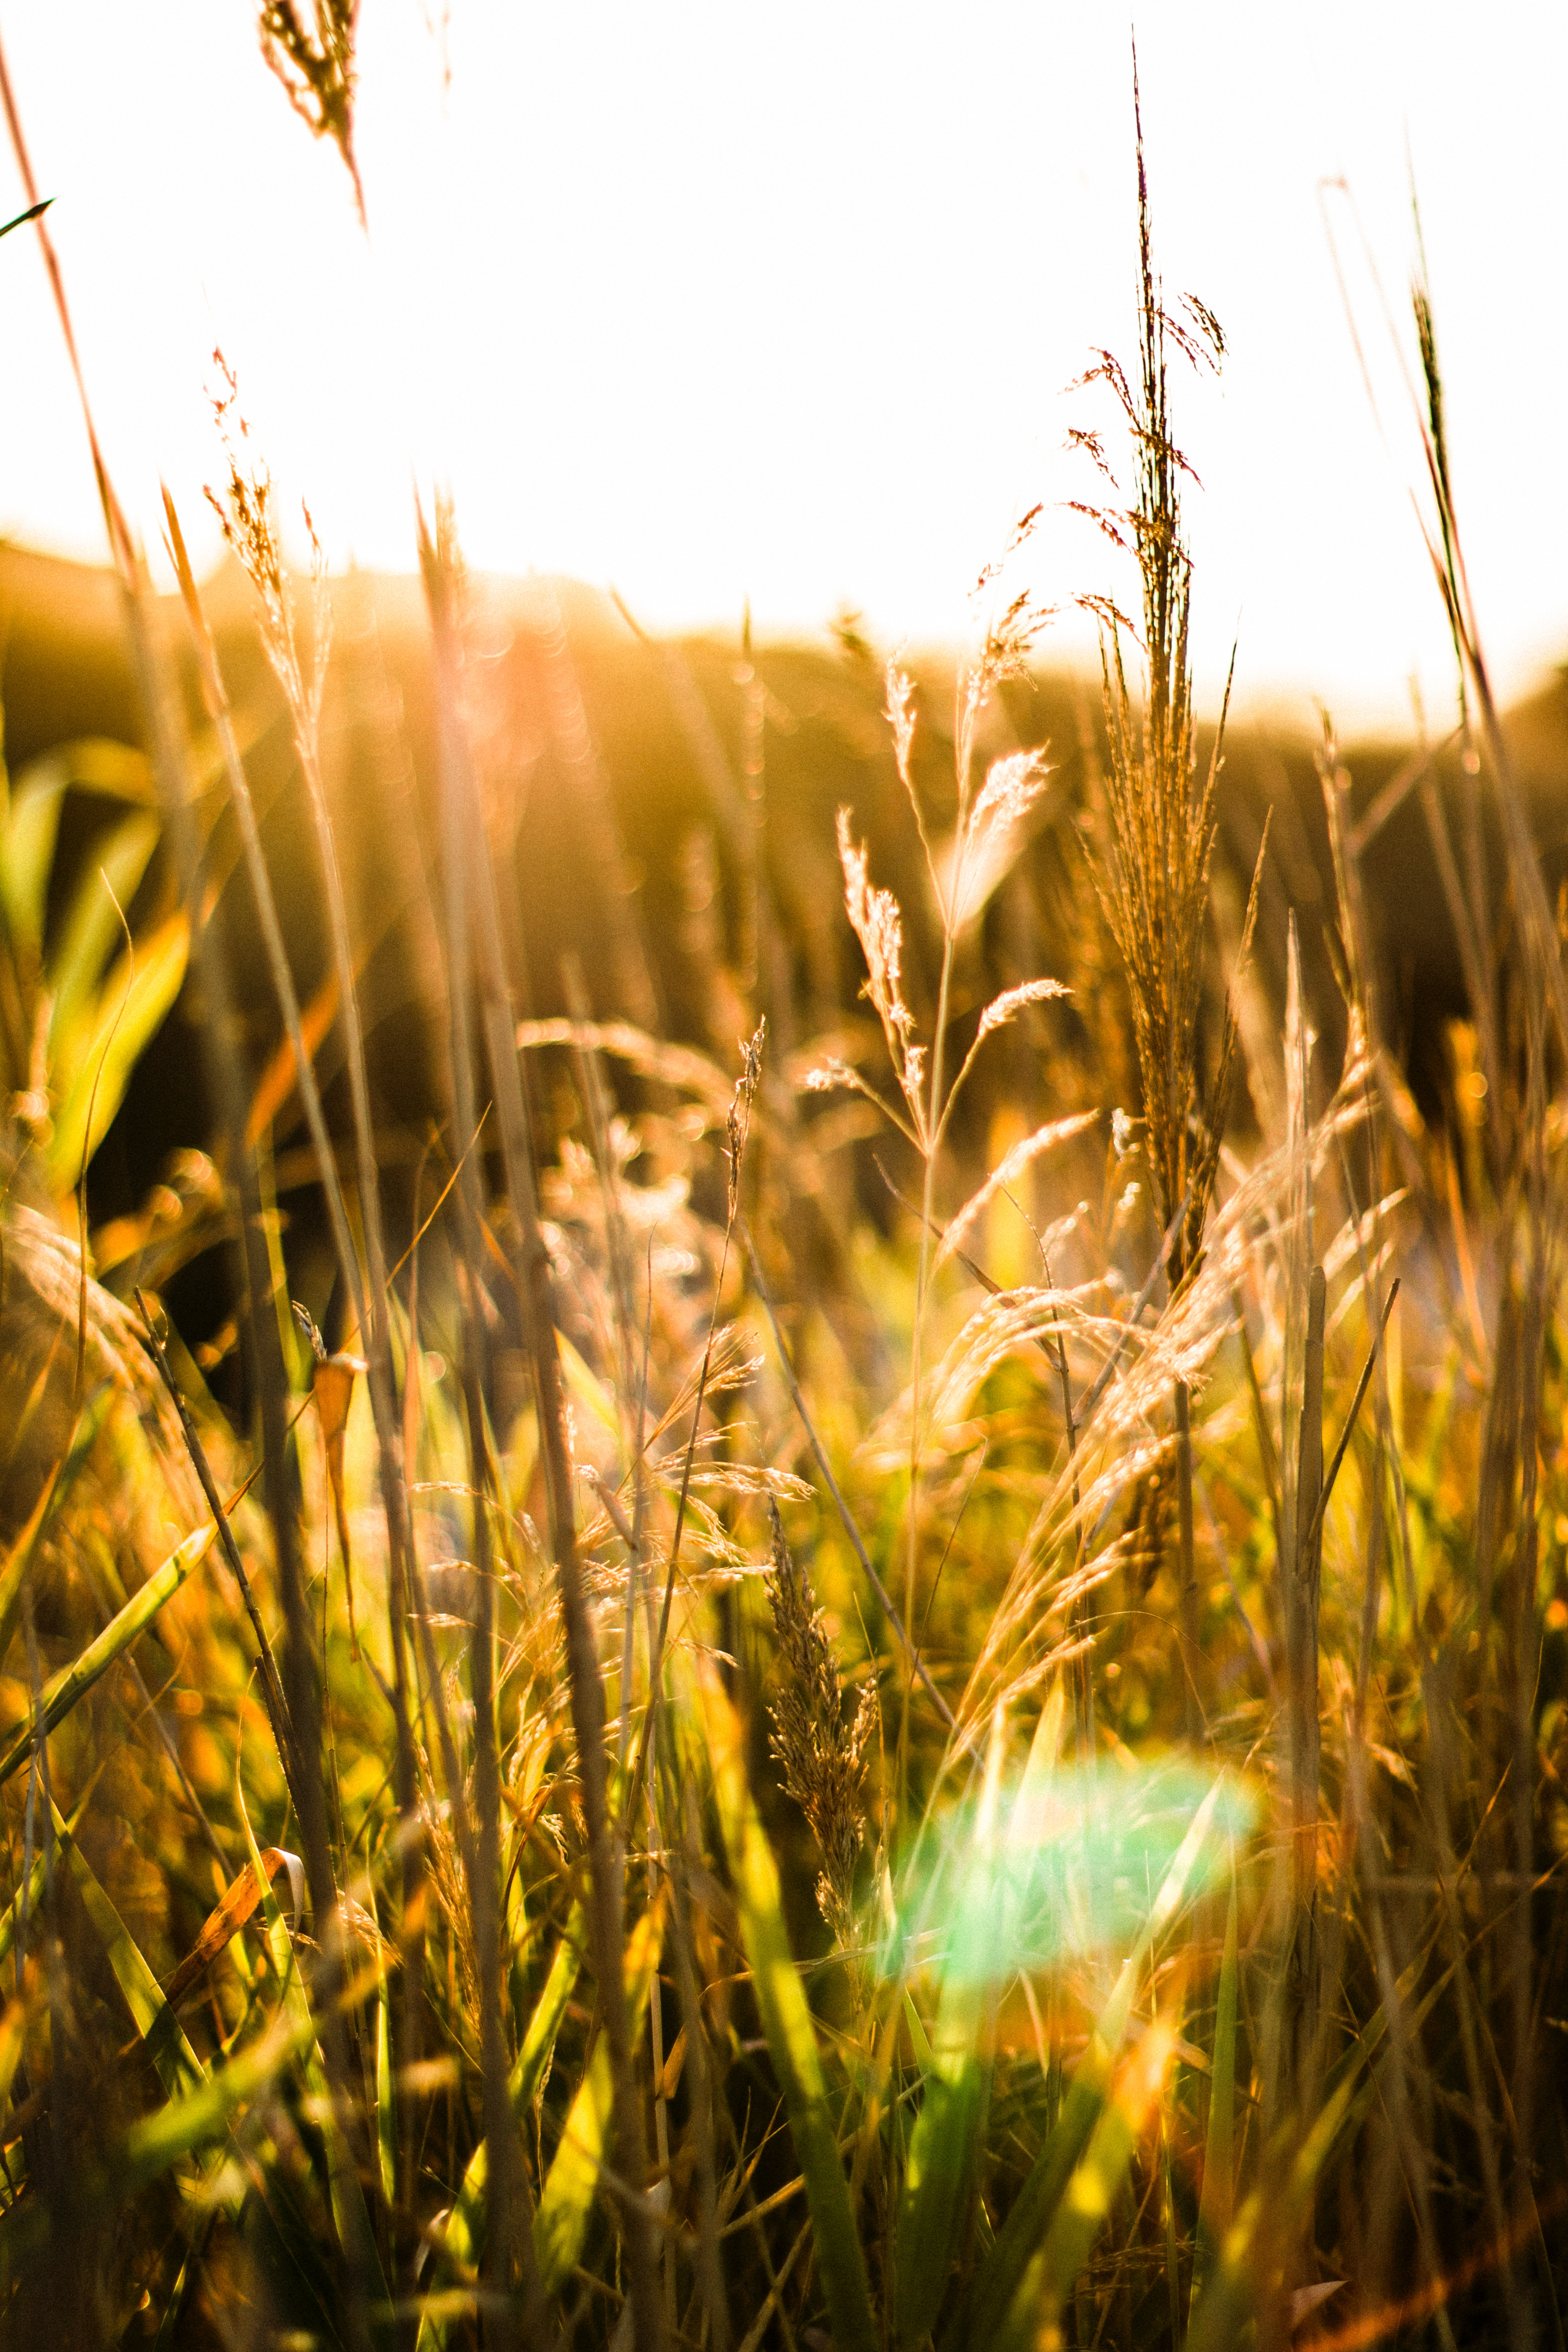 Brown Wheat With Sunrays Effect, Agriculture, Landscape, Wheat, Sunset, HQ Photo